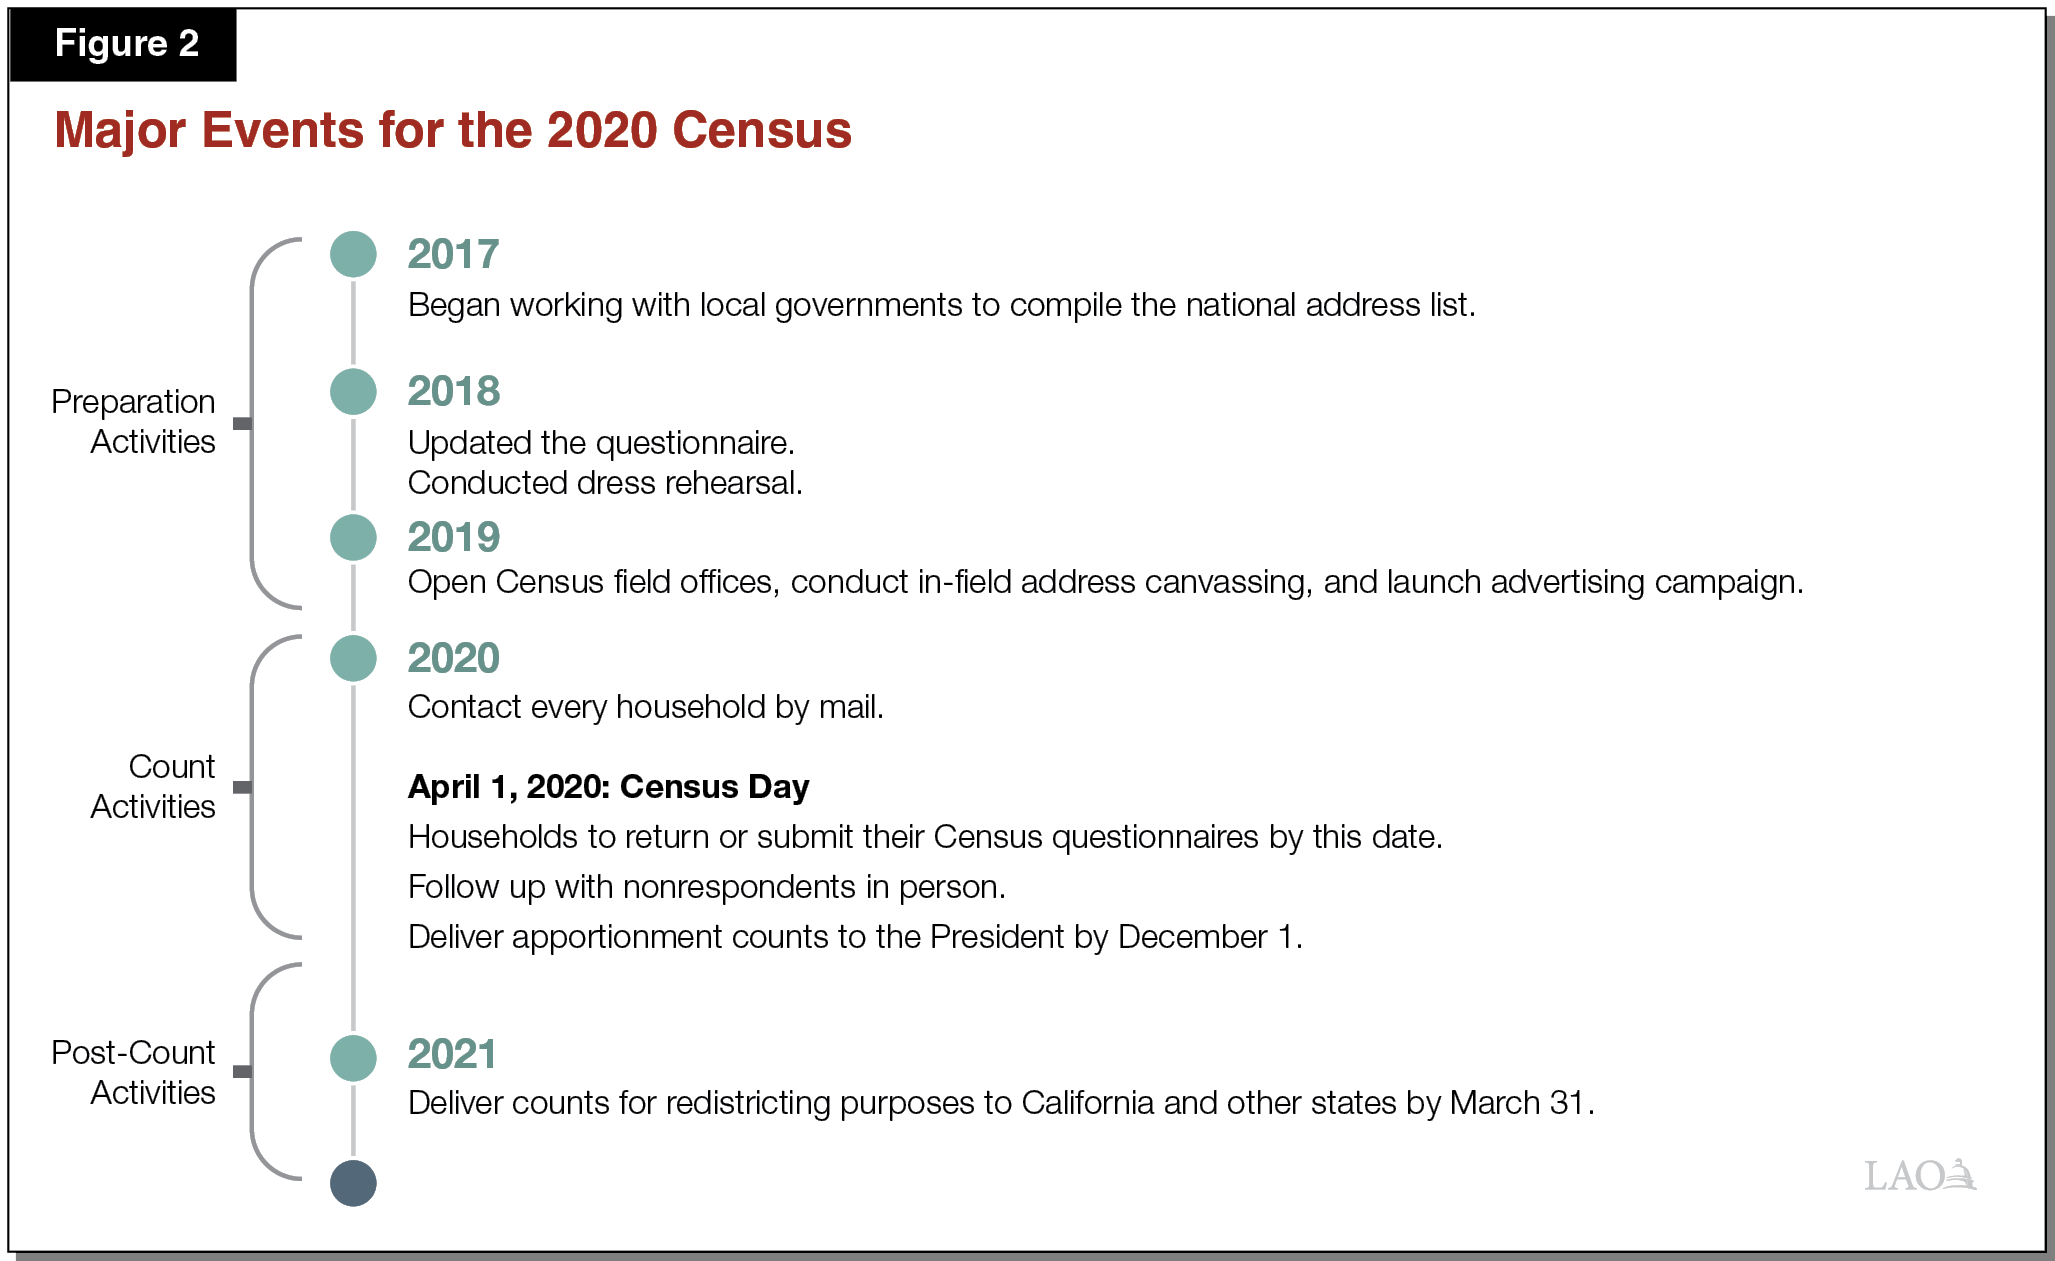 Figure 2 - Major Events for the 2020 Census